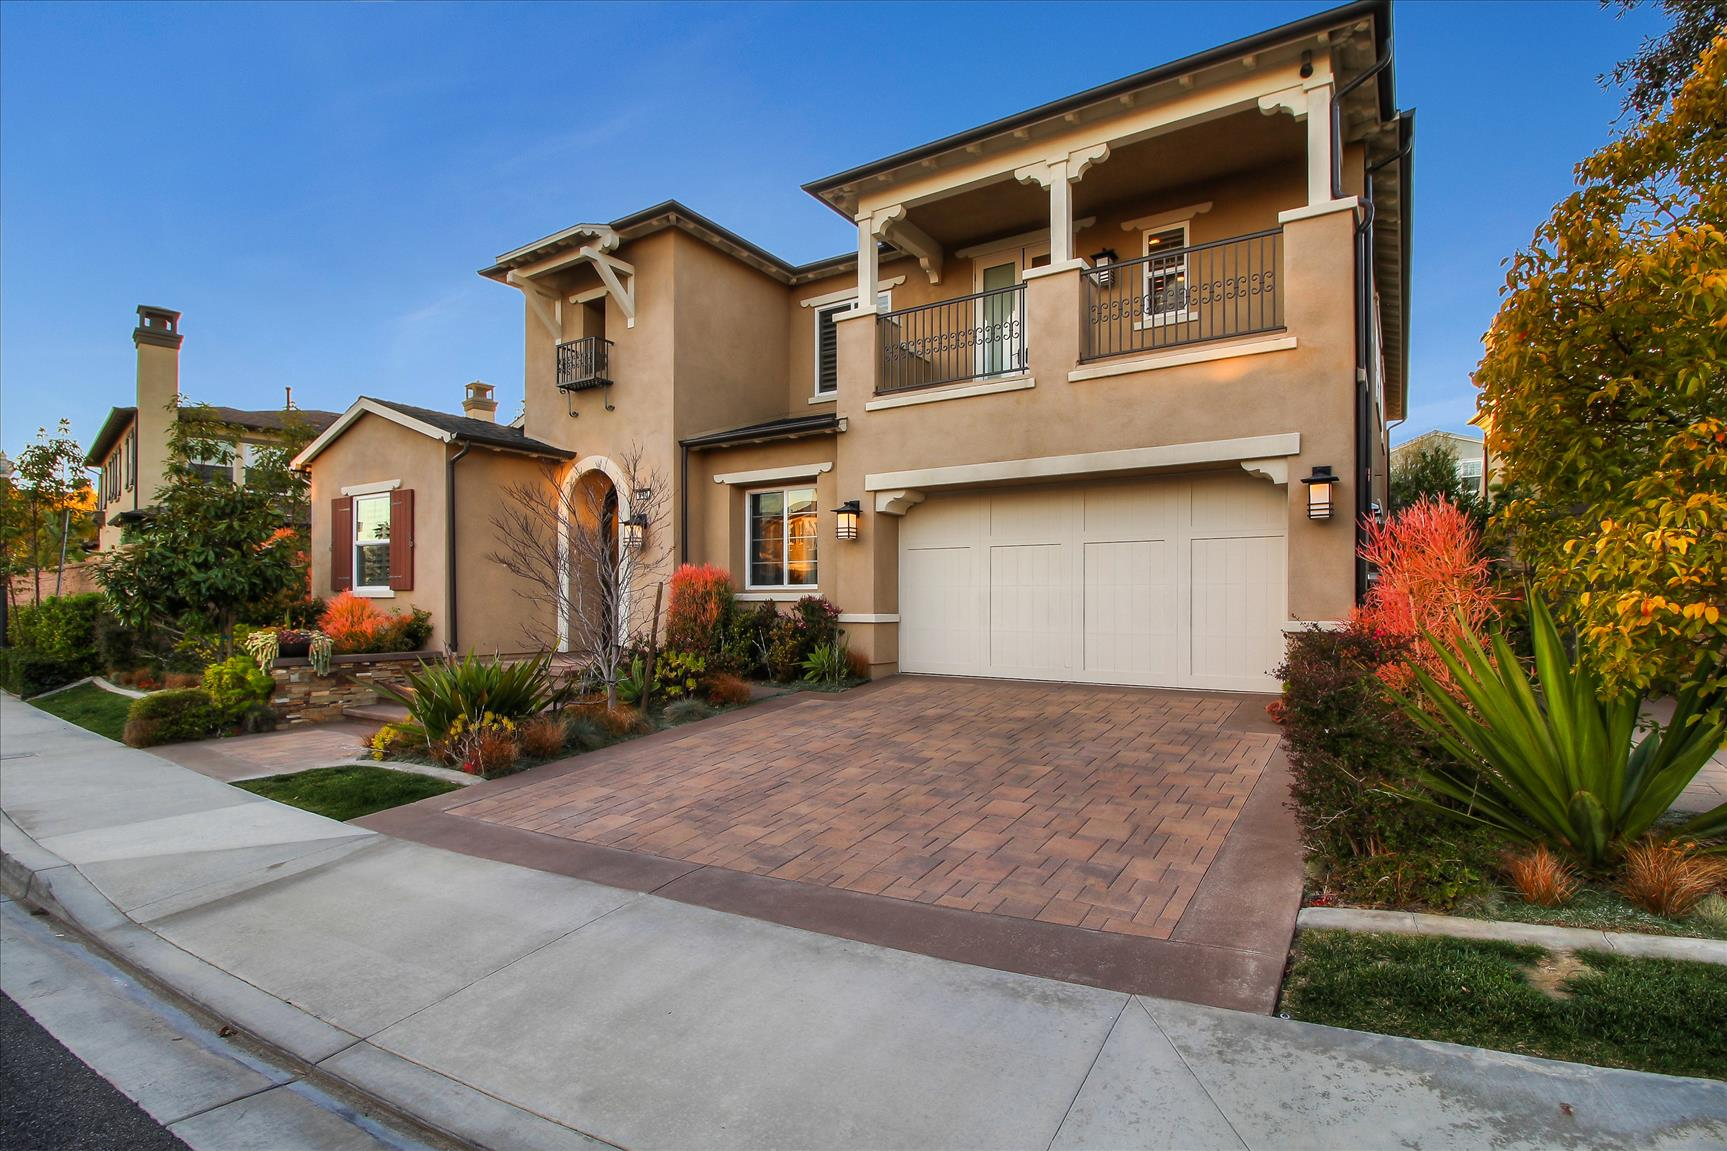 17471 Kennebunk Ln, Huntington Beach, CA  926497.jpg